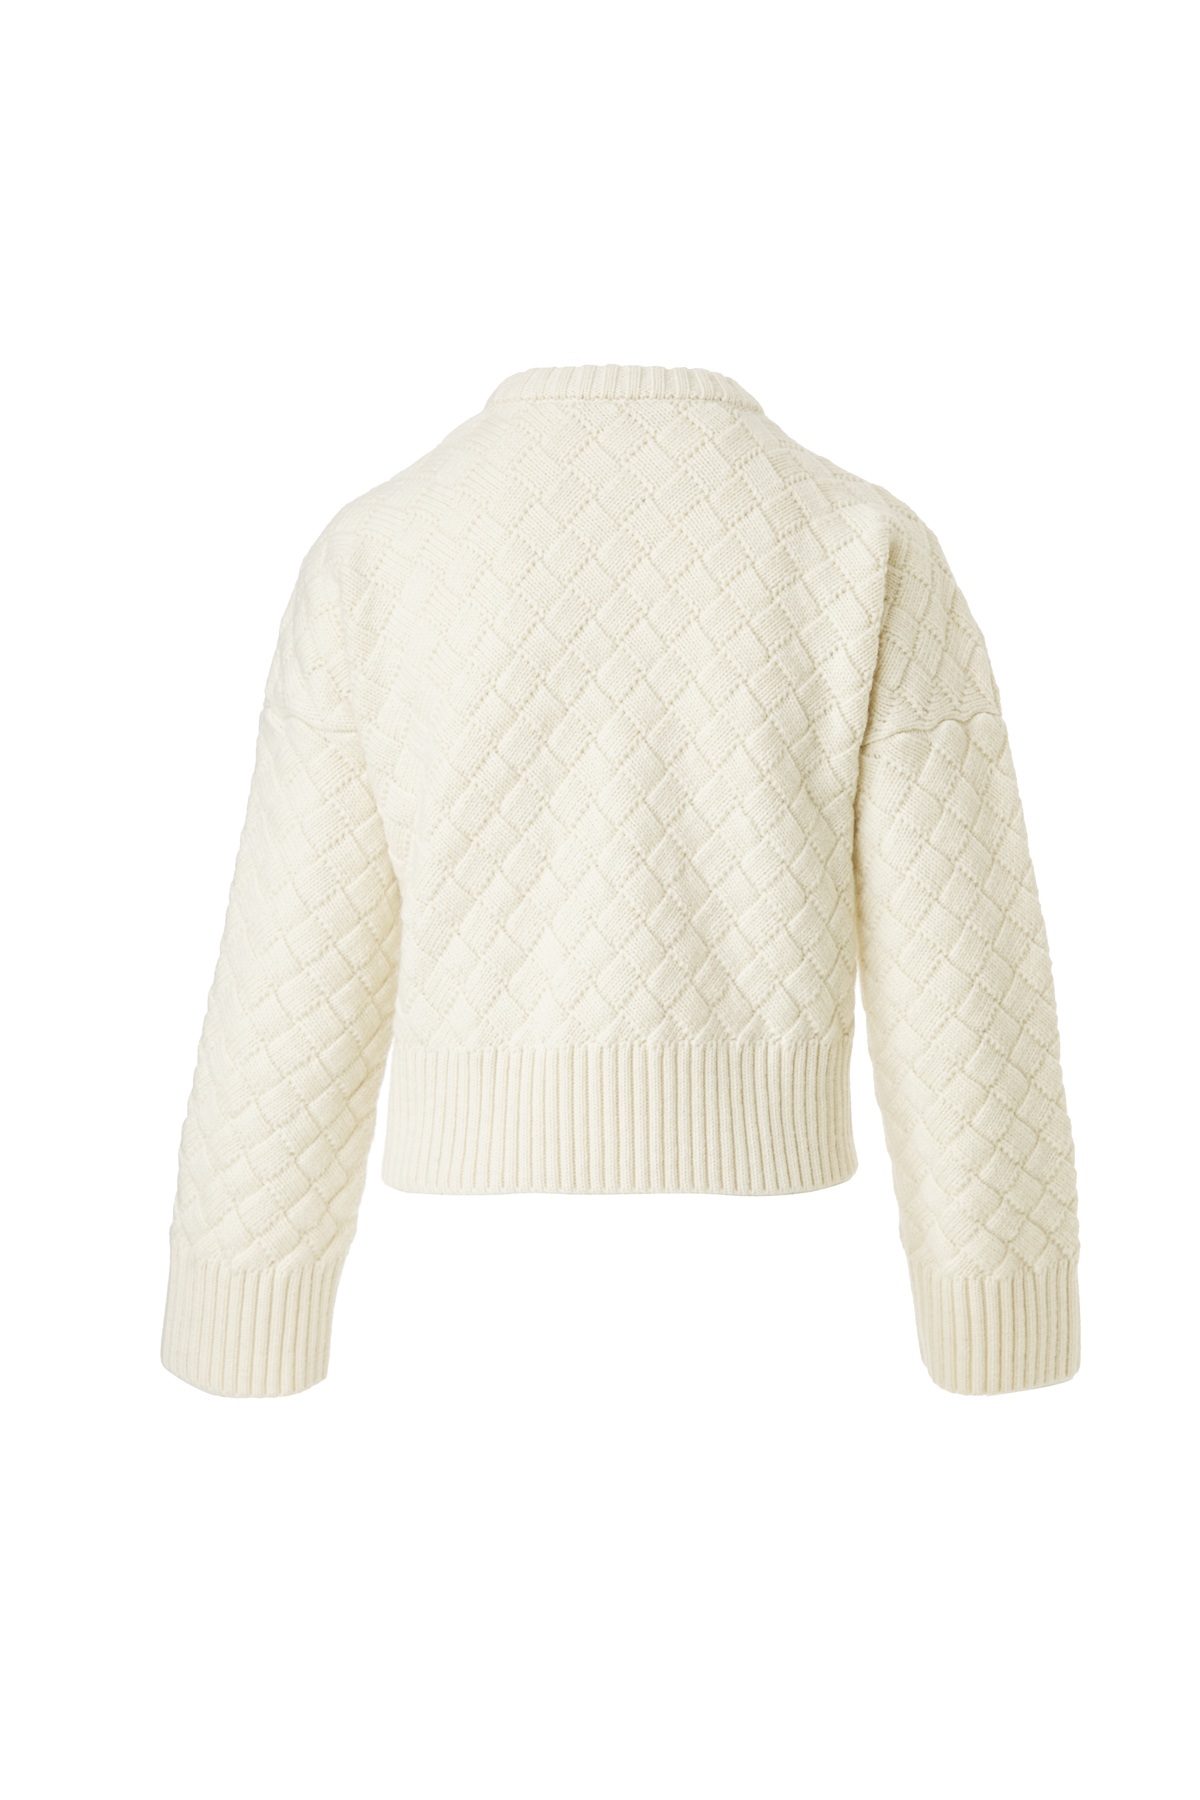 Clouded Squares Sweater (Waist Length Edition) - Organic White by Ami Amalia on curated-crowd.com